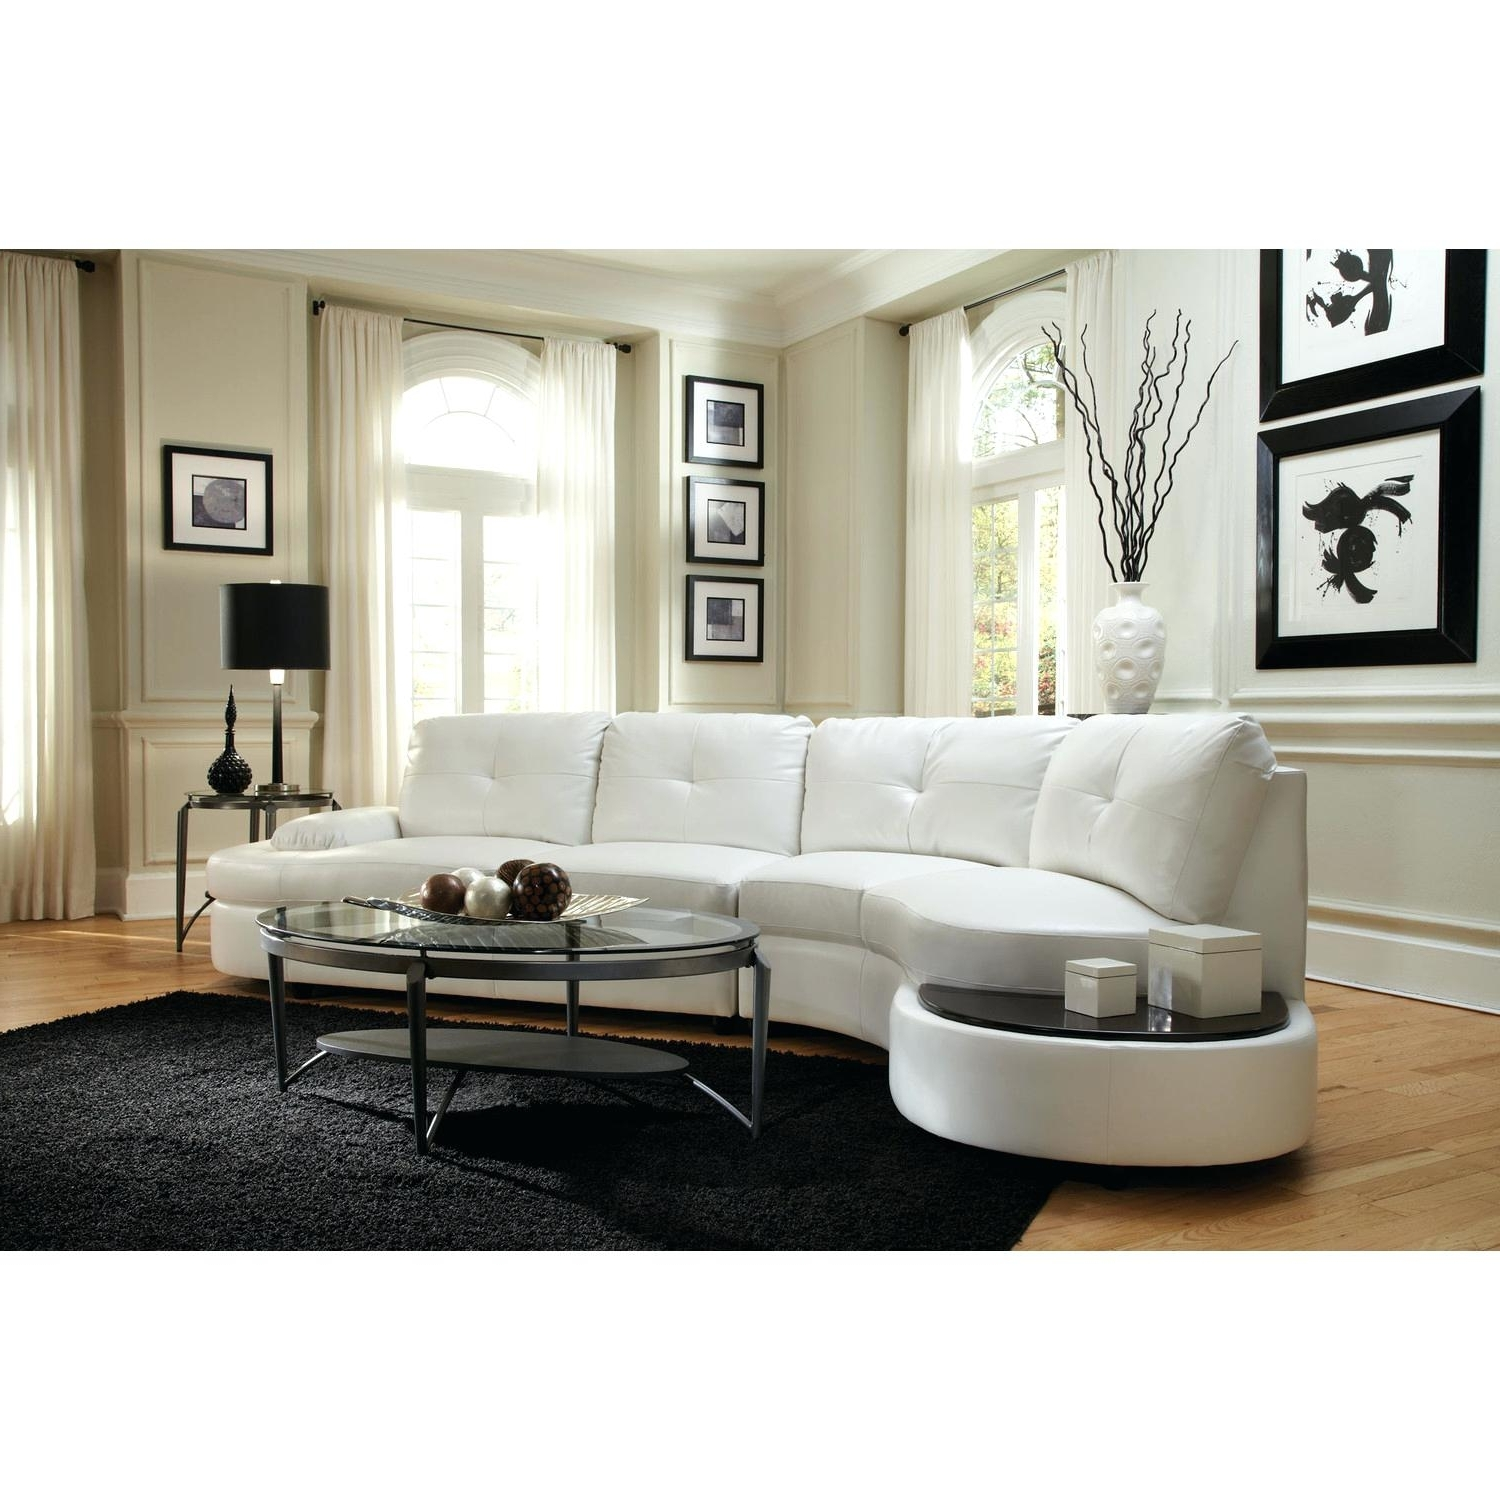 Clubanfi Within Ontario Canada Sectional Sofas (View 11 of 20)